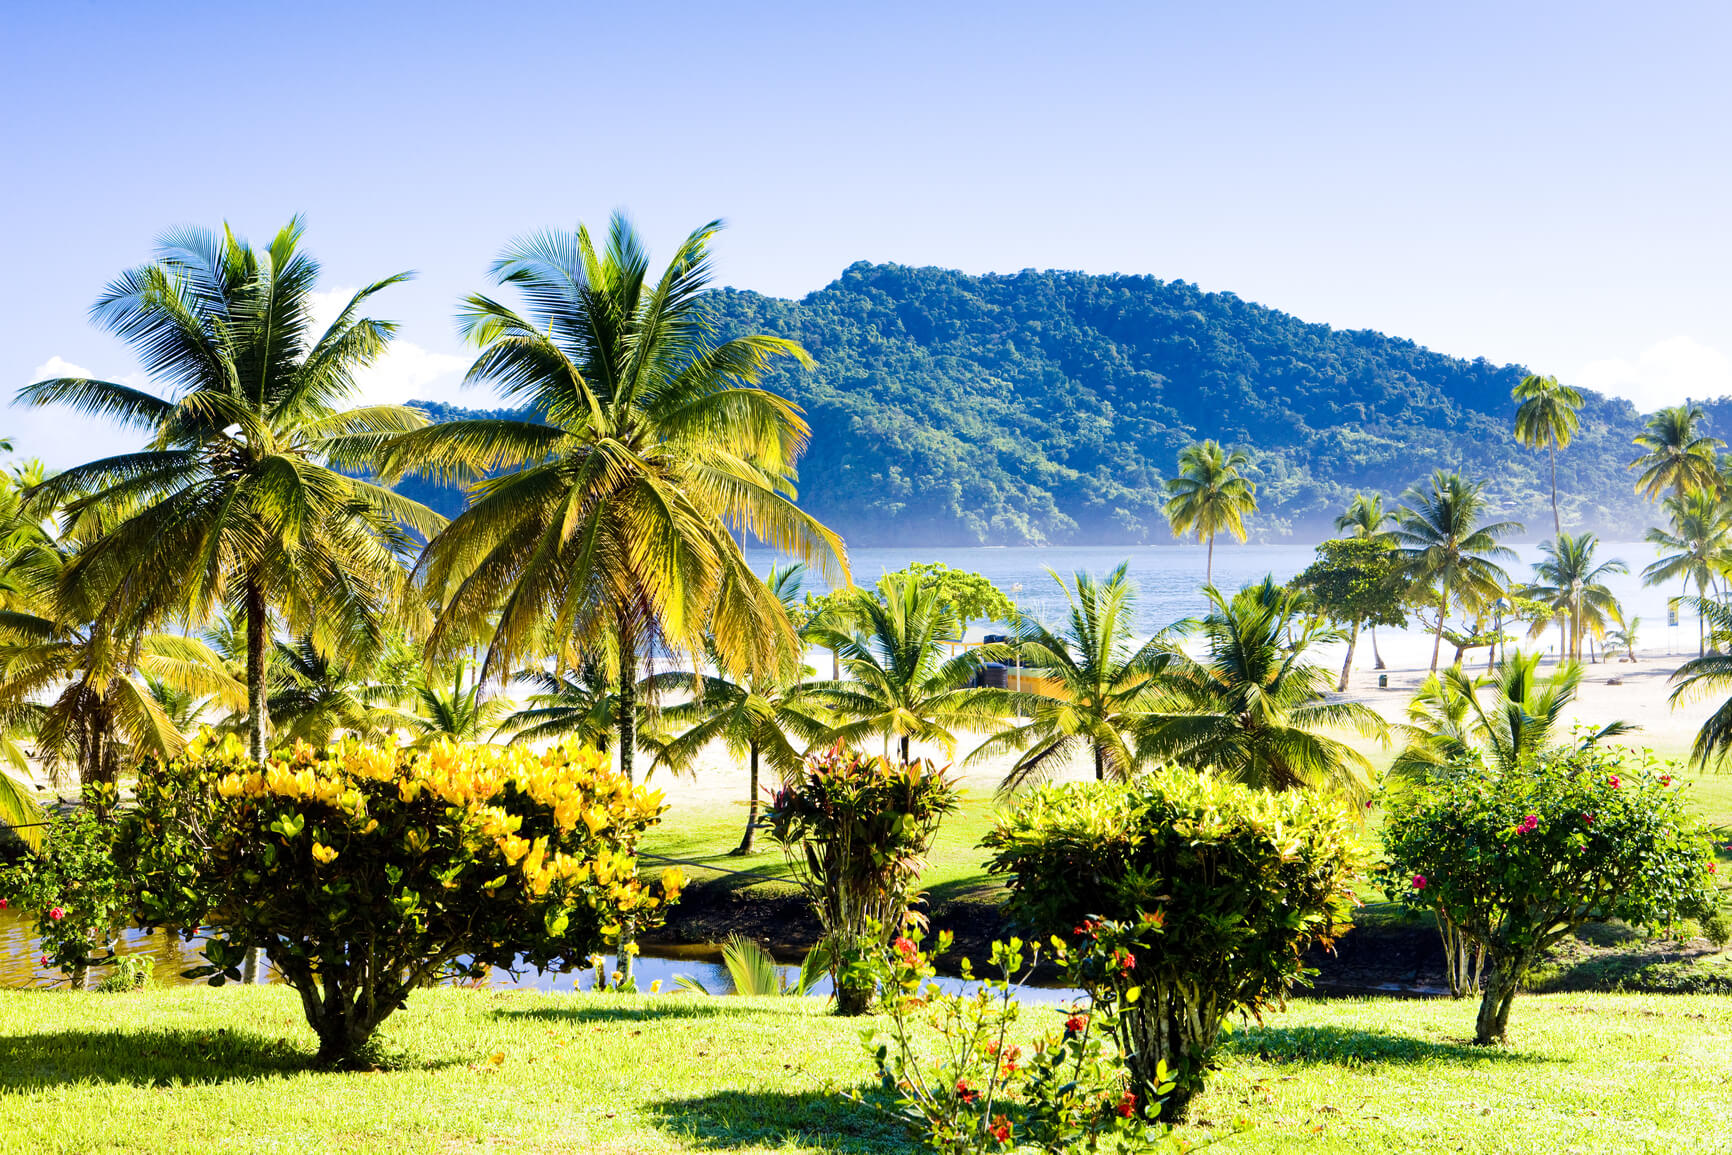 London, UK to Trinidad for only £376 roundtrip